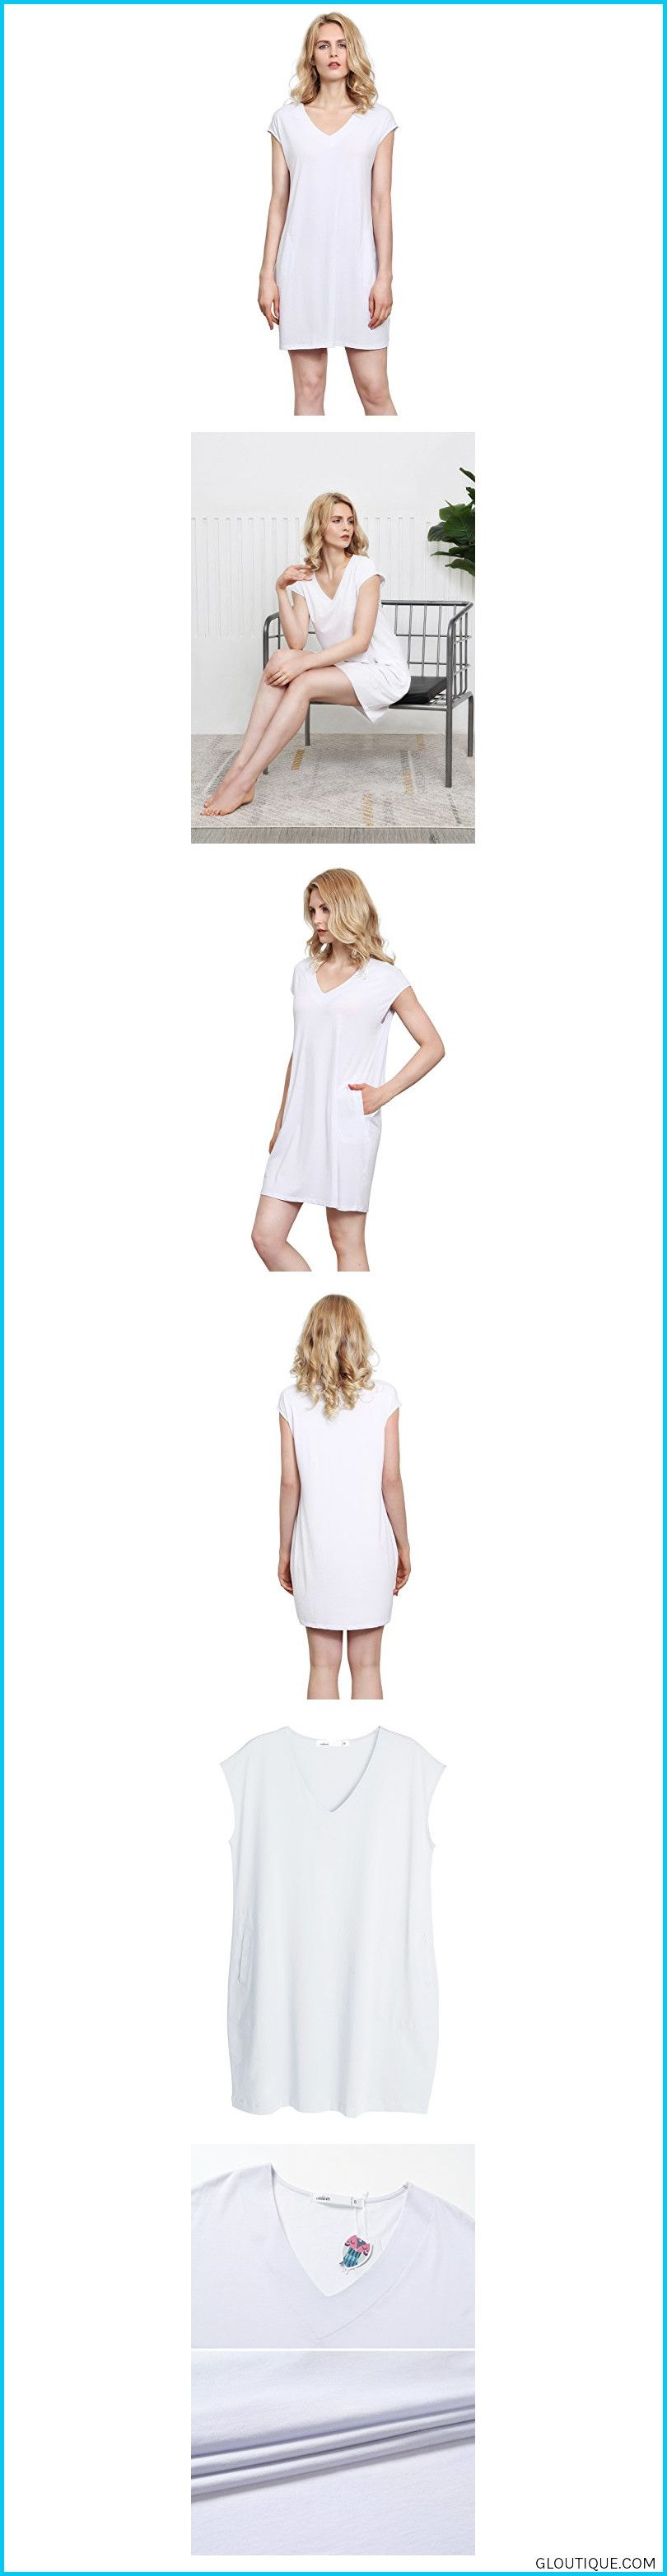 c4540b4128 FEATURES:Sleeveless dress with pockets, V neck dress, Casual Loose Swing  dre#shopVislivin Women's Casual Loose Pockets T-Shirt Dress Plain Simple ...